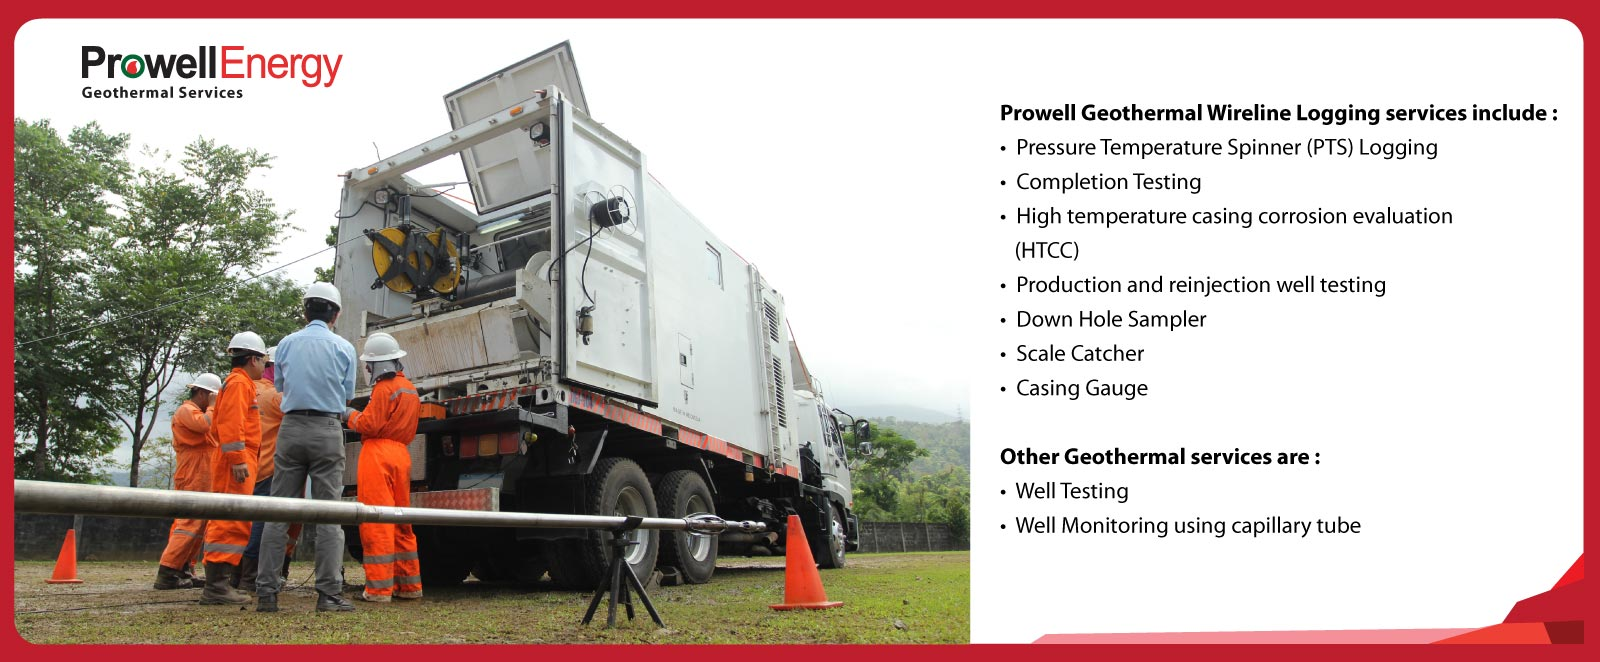 ProwellEnergy Geothermal Services